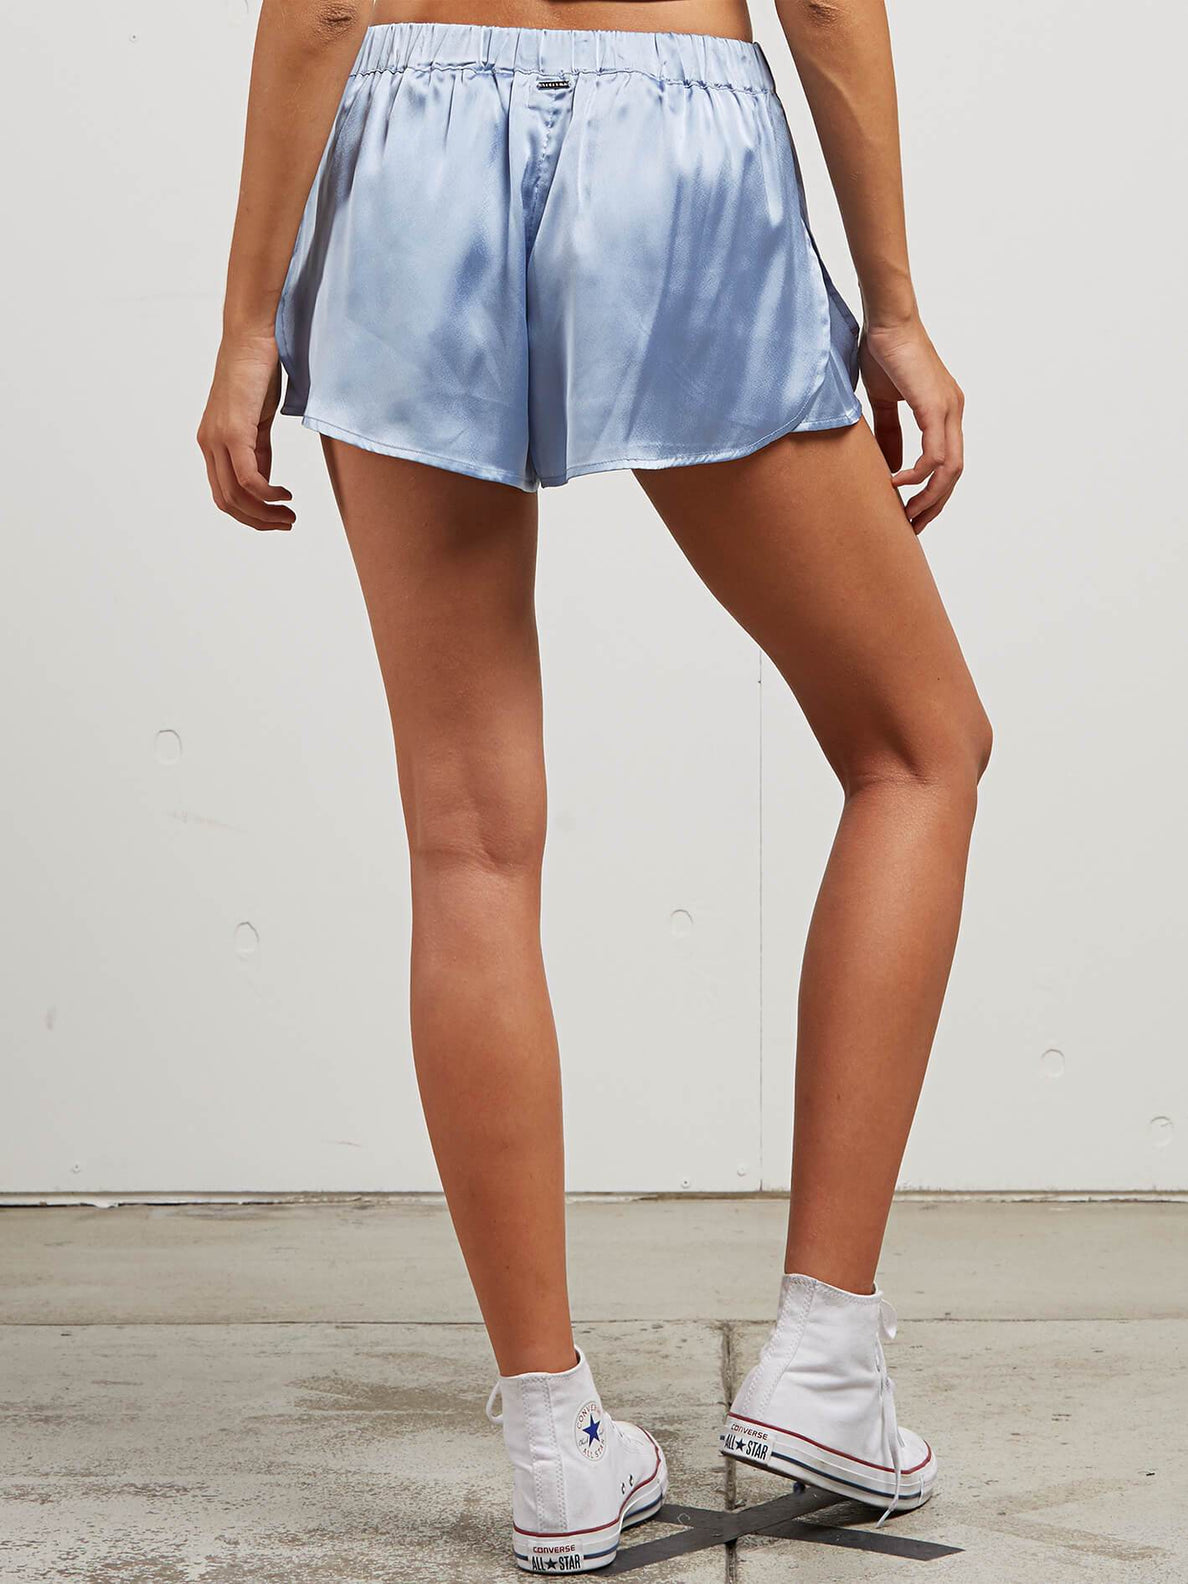 You Want This Shorts In Misty Blue, Back View